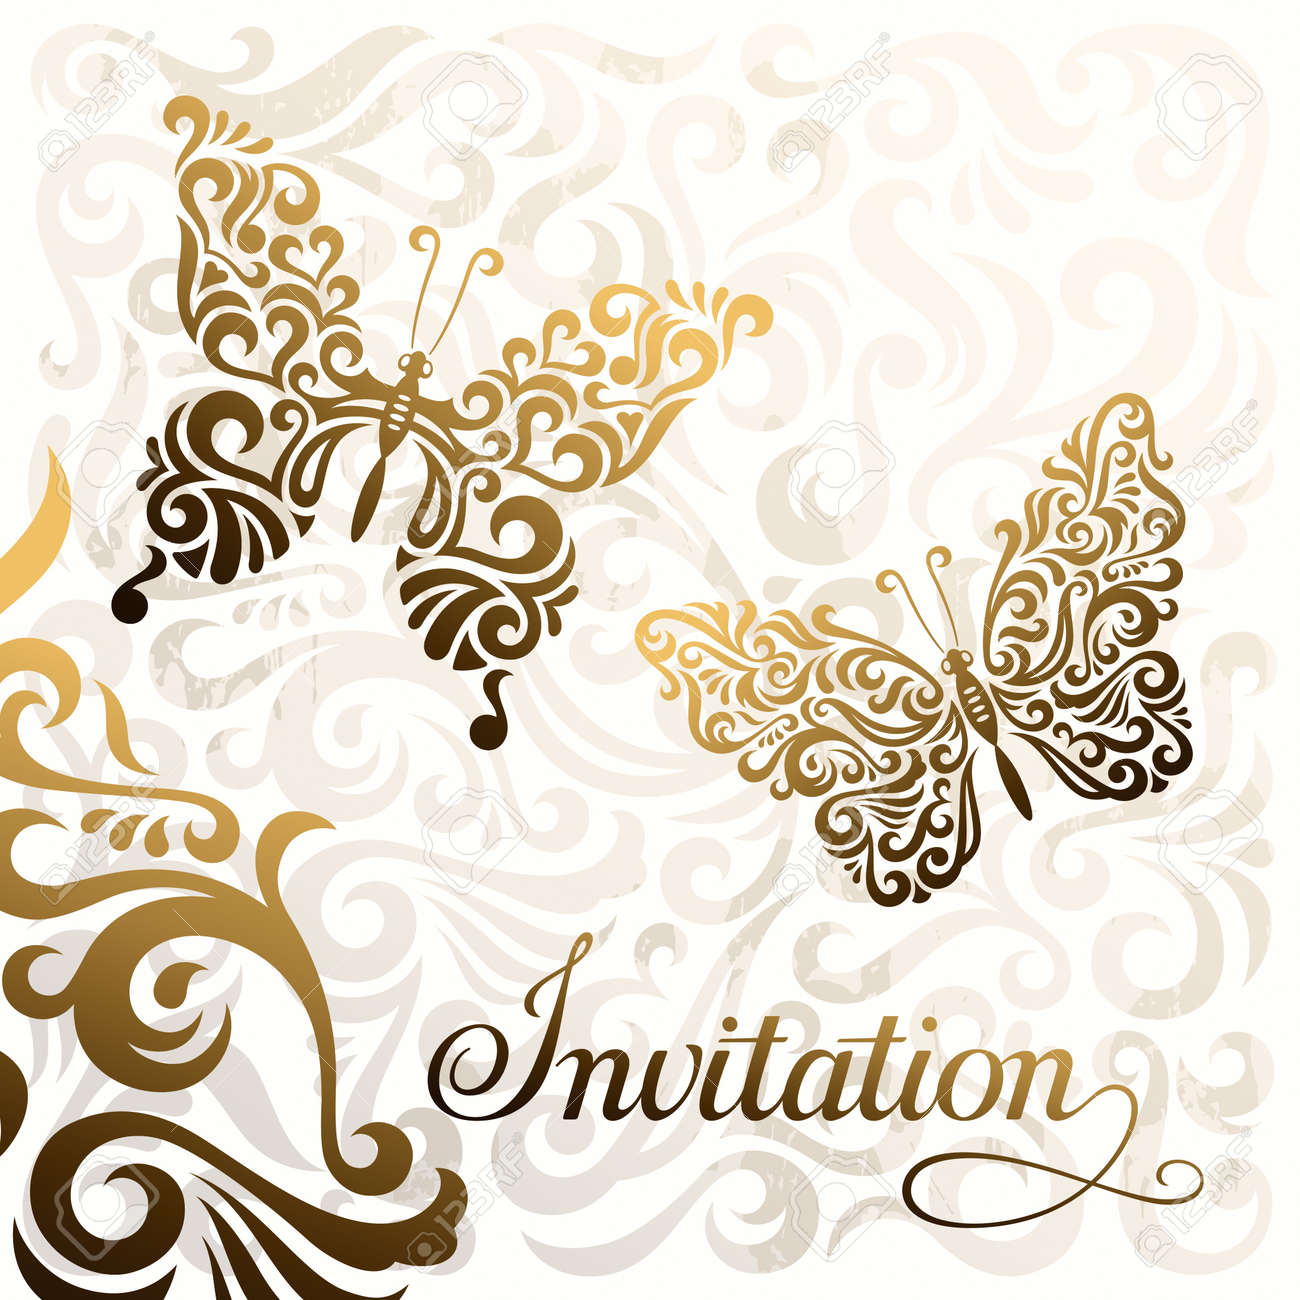 Invitation vector template with stylized butterflies royalty free invitation vector template with stylized butterflies stock vector 19116700 stopboris Gallery